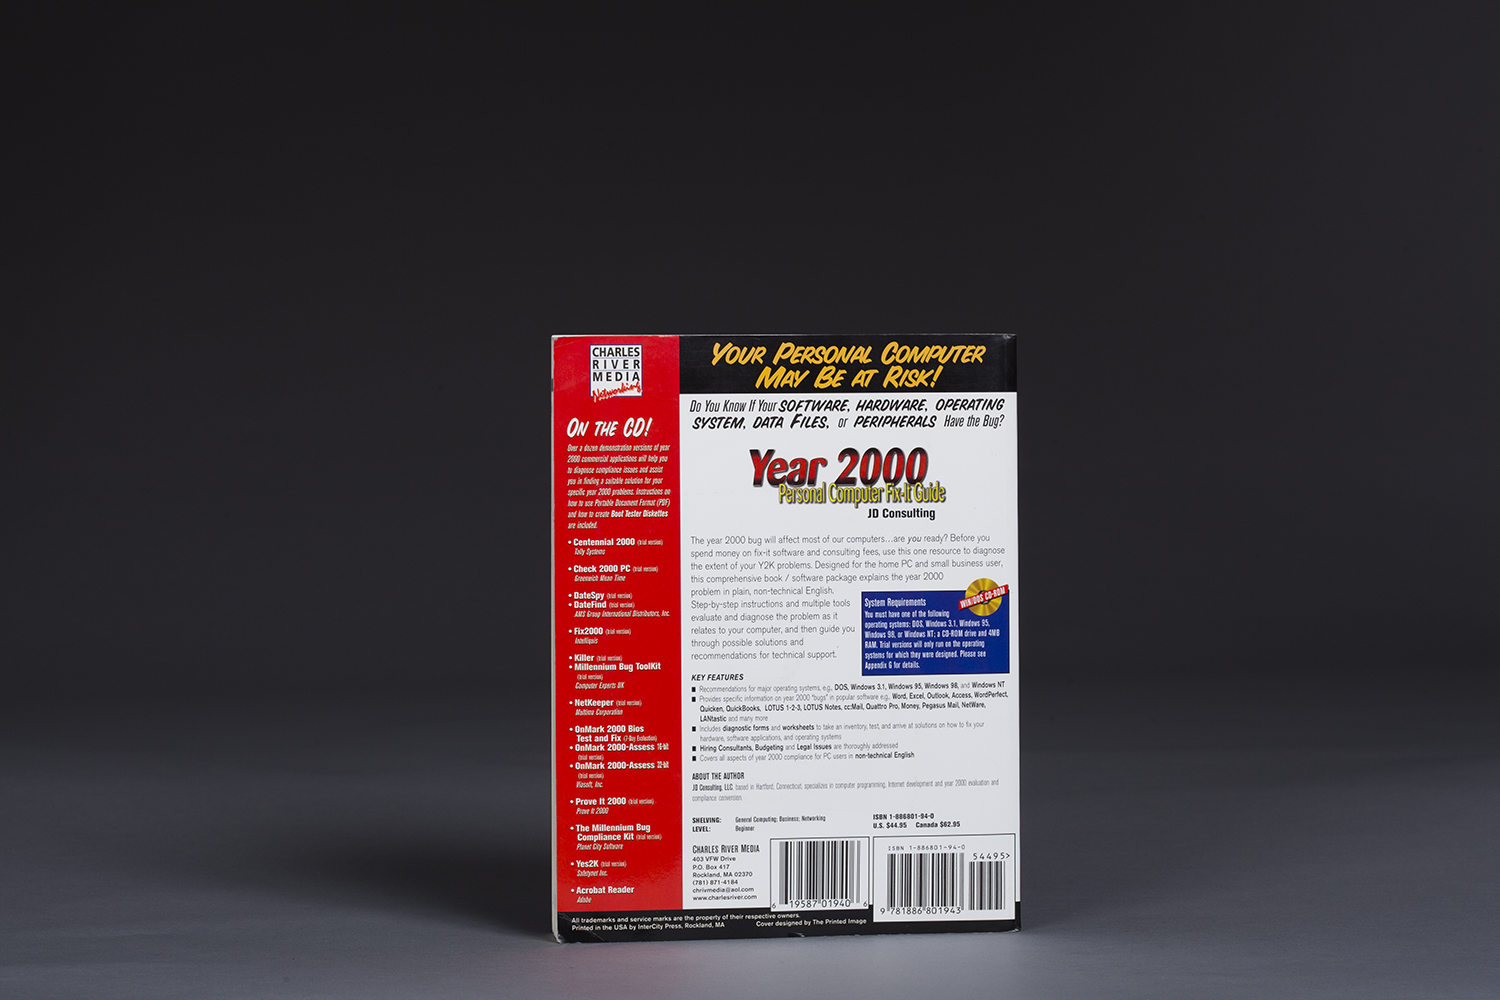 Year 2000 Personal Computer Fix-It Guide - 0081 Back.jpg